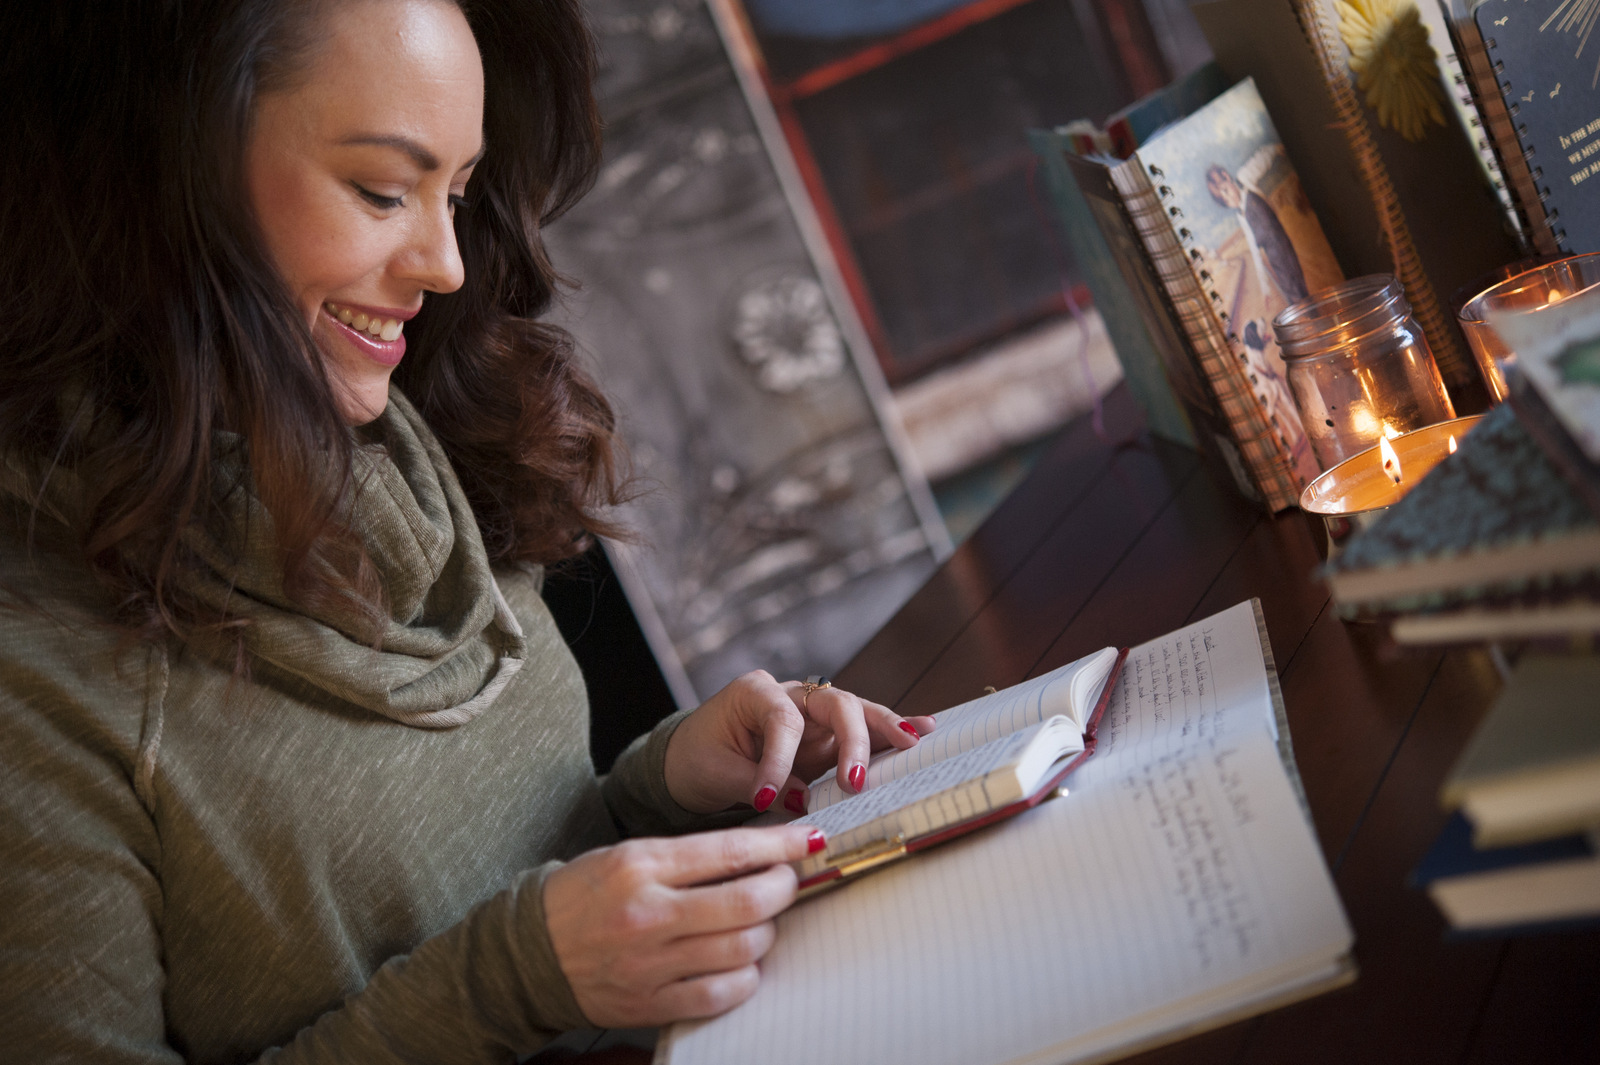 This is fun! A journal is a great gift idea for anyone with an introspective side.